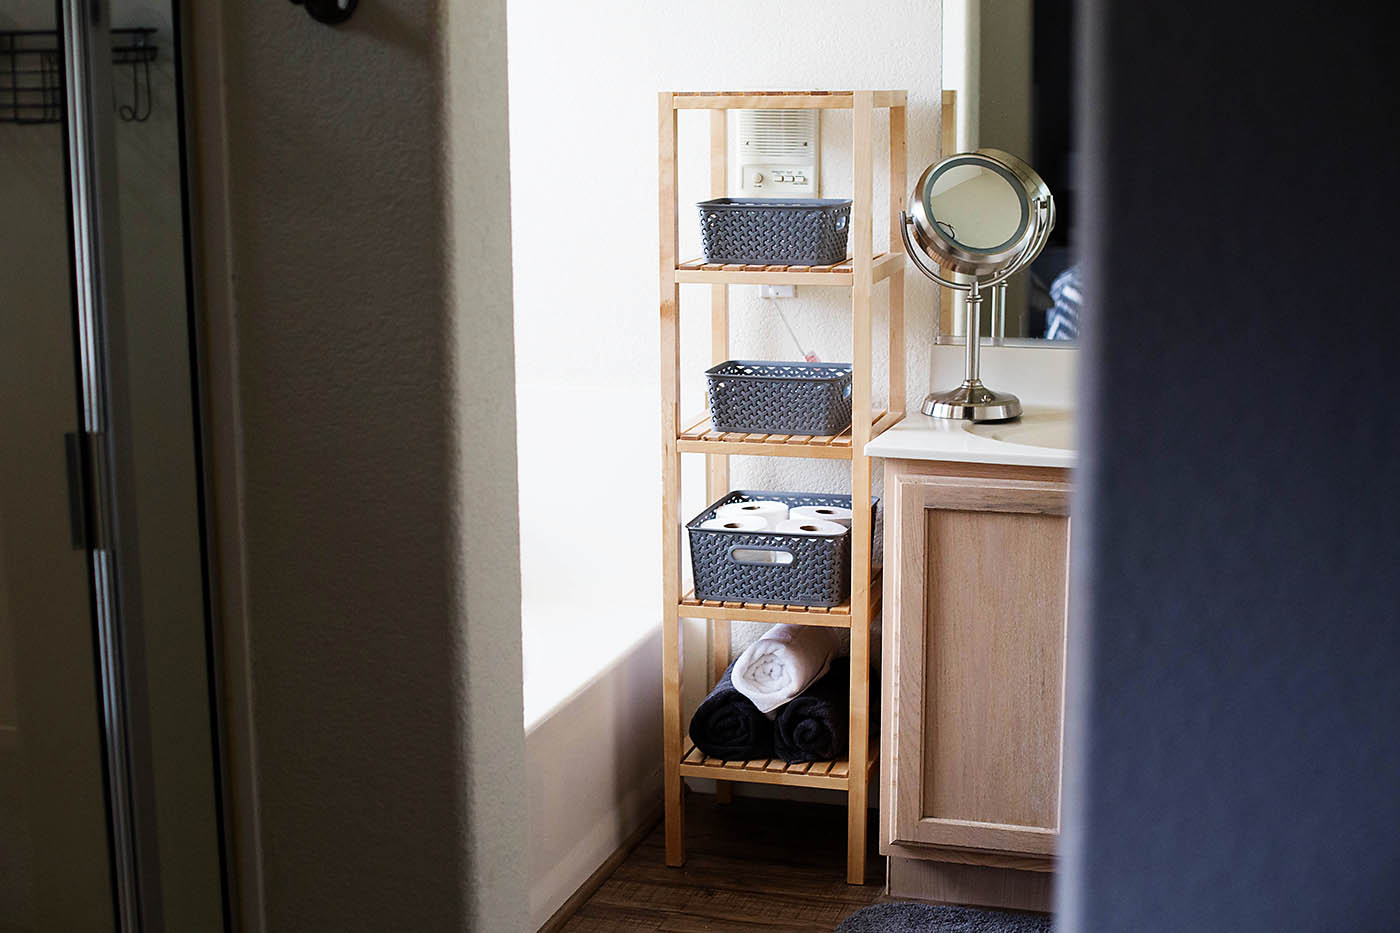 Open shelving bathroom organization tips